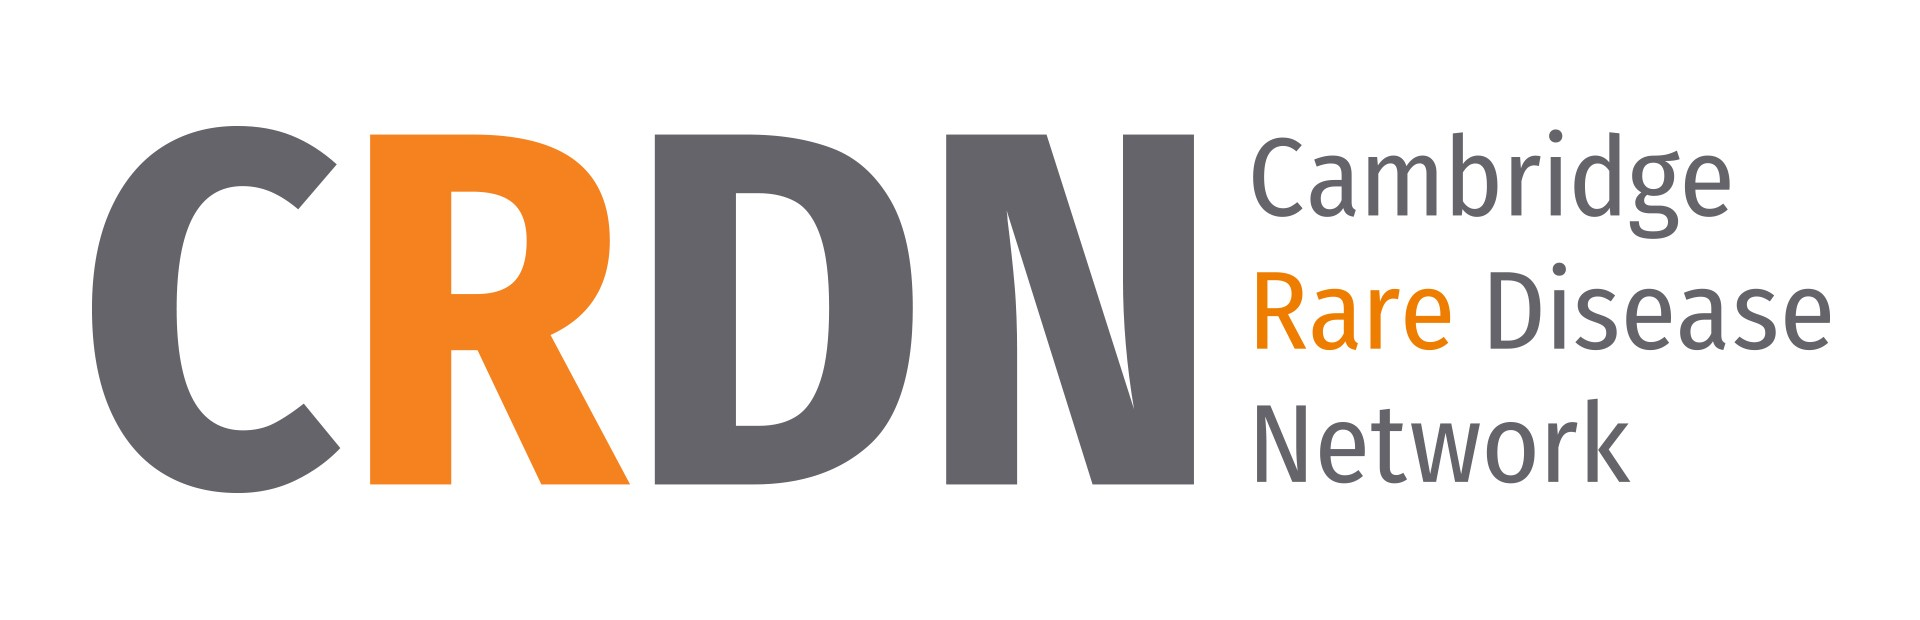 Mutual Collaboration focus for CRDN Companies Forum